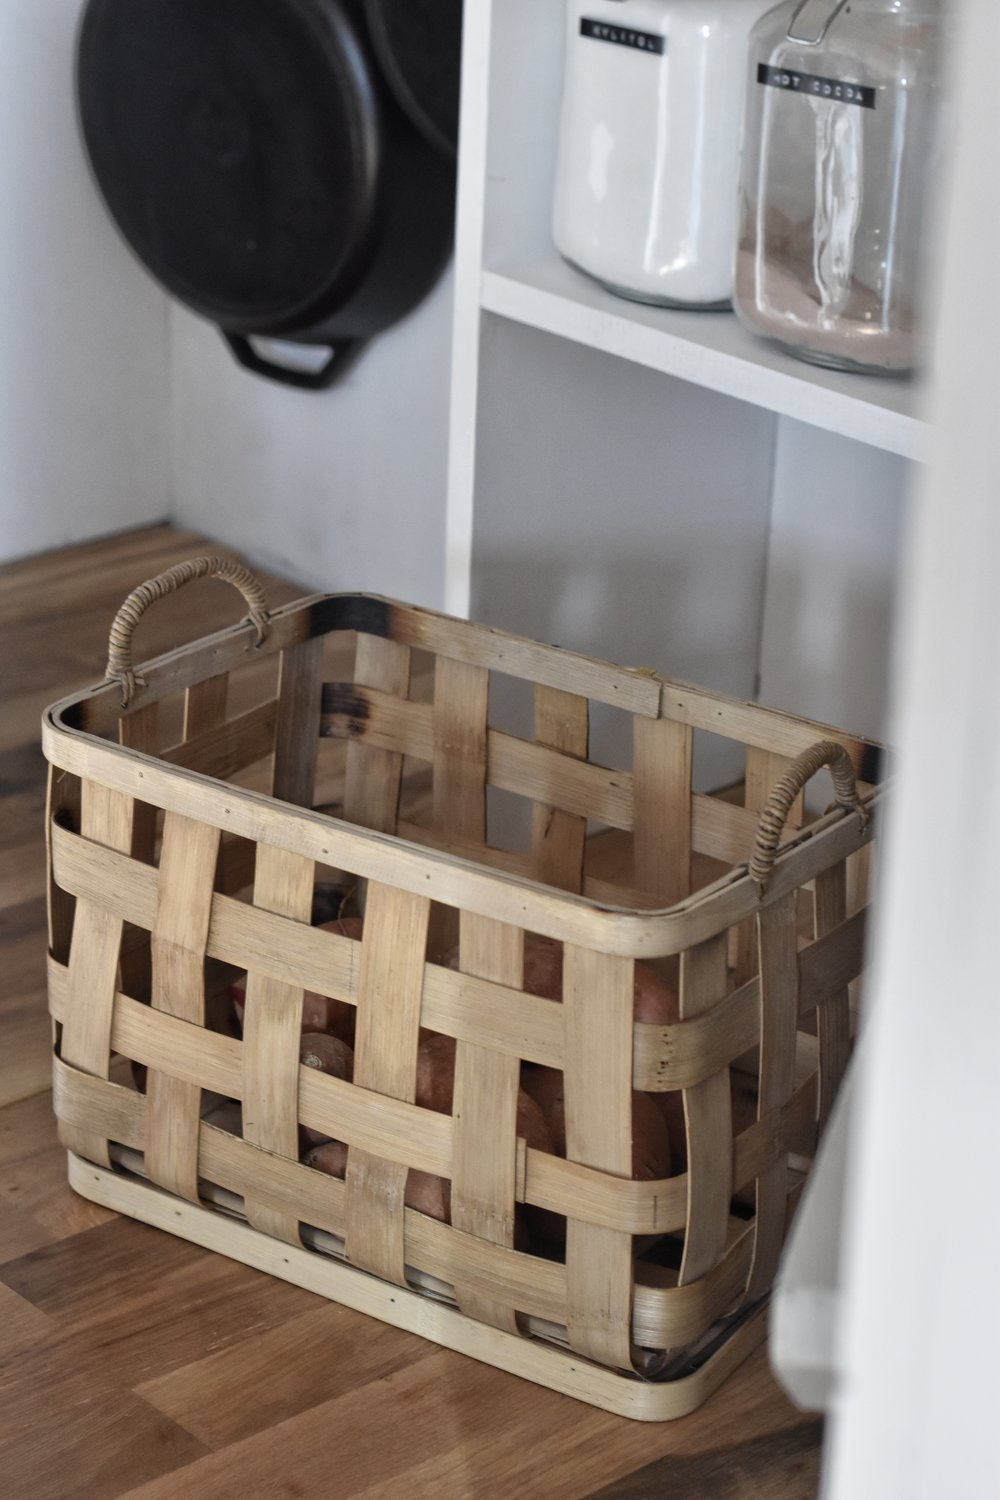 pantry basket - this basket was purchased from hobby lobby but I have been unable to find them online